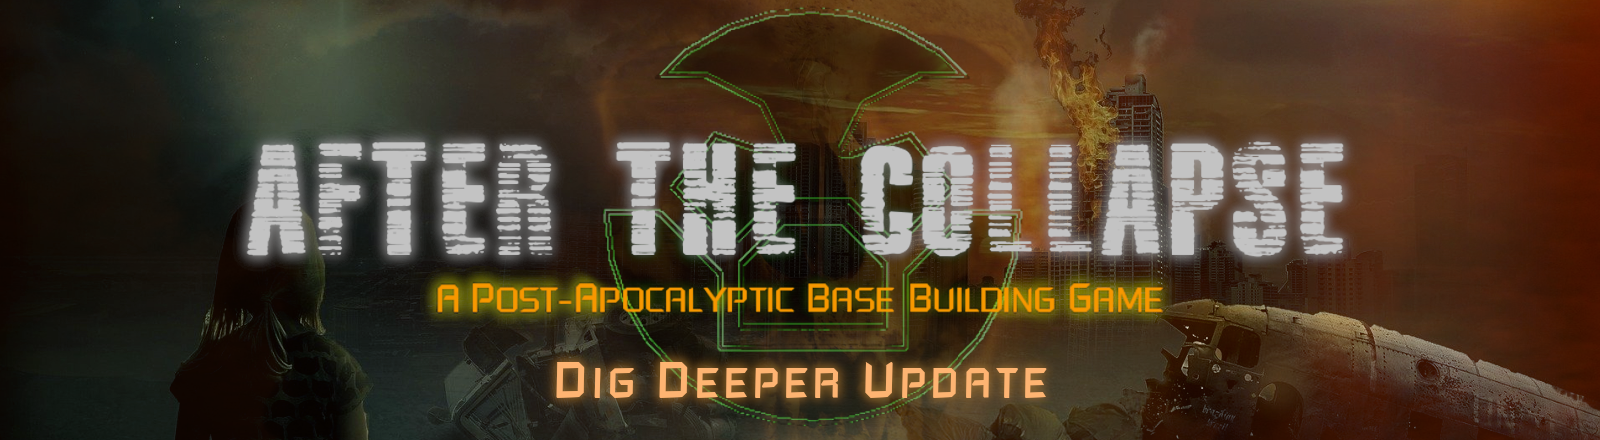 After The Collapse 0.8.2: Digging Deeper